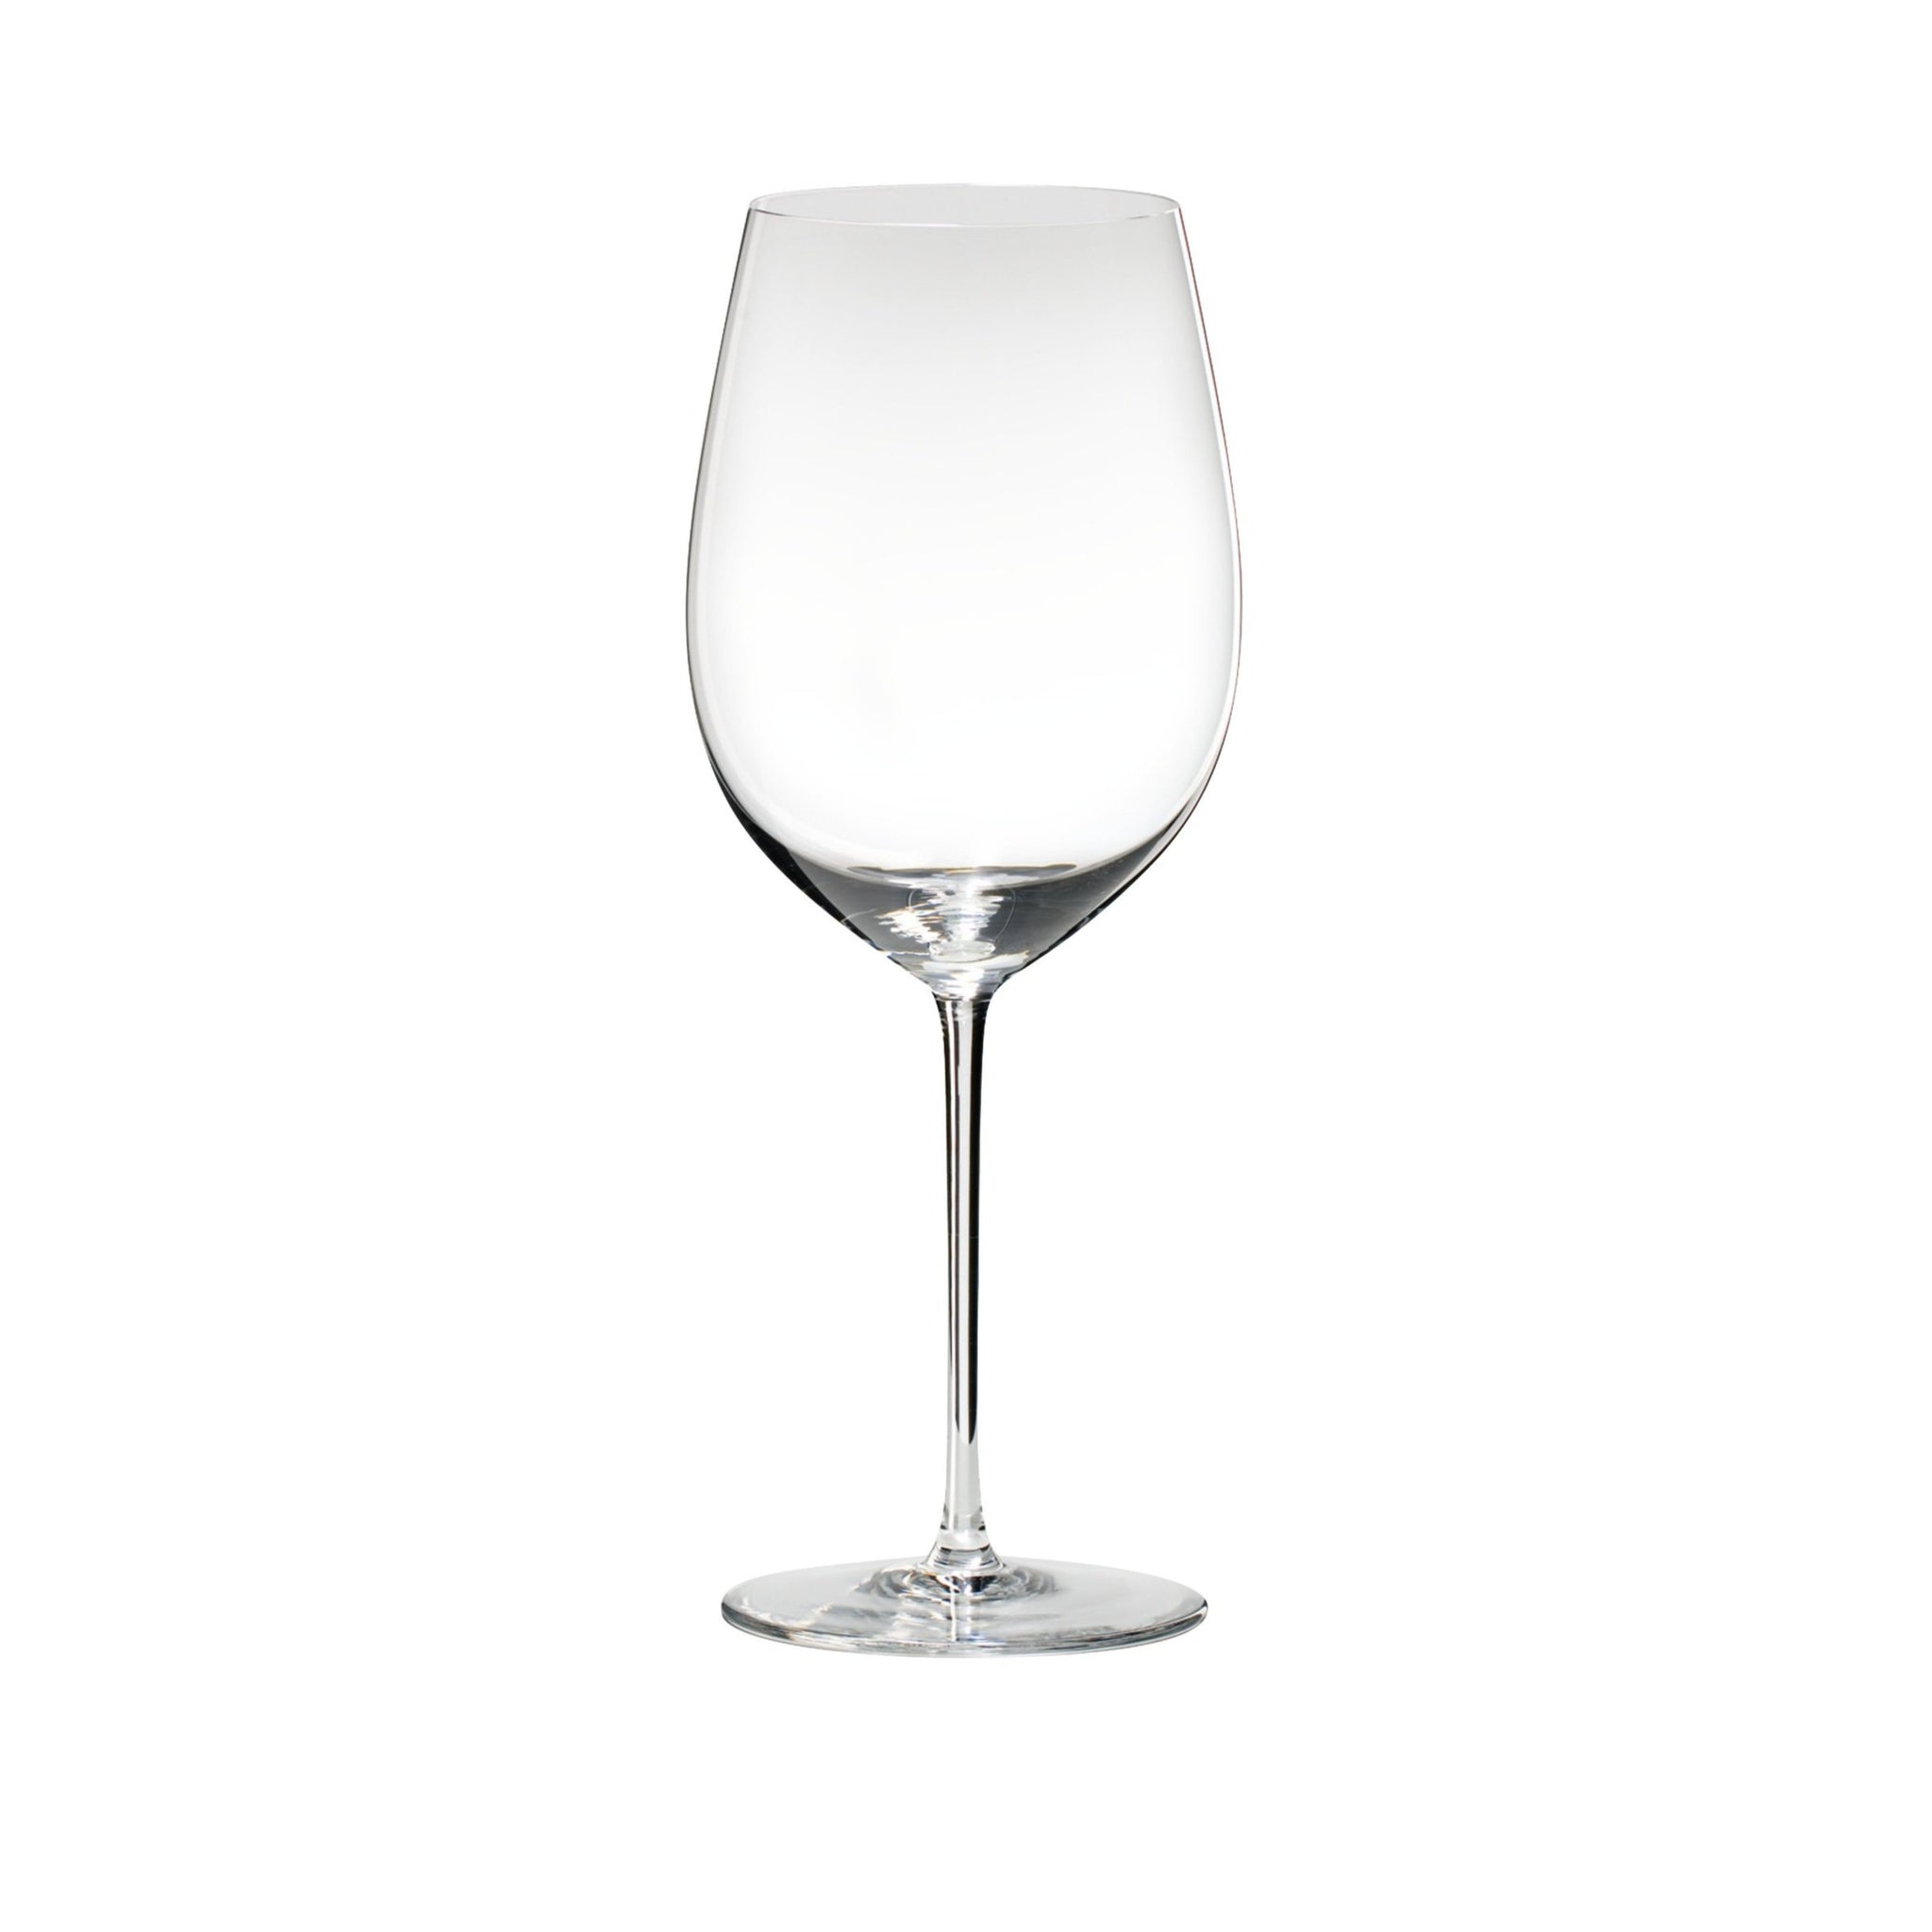 Riedel Sommeliers Bordeaux Grand Cru Glasses (set of 2)